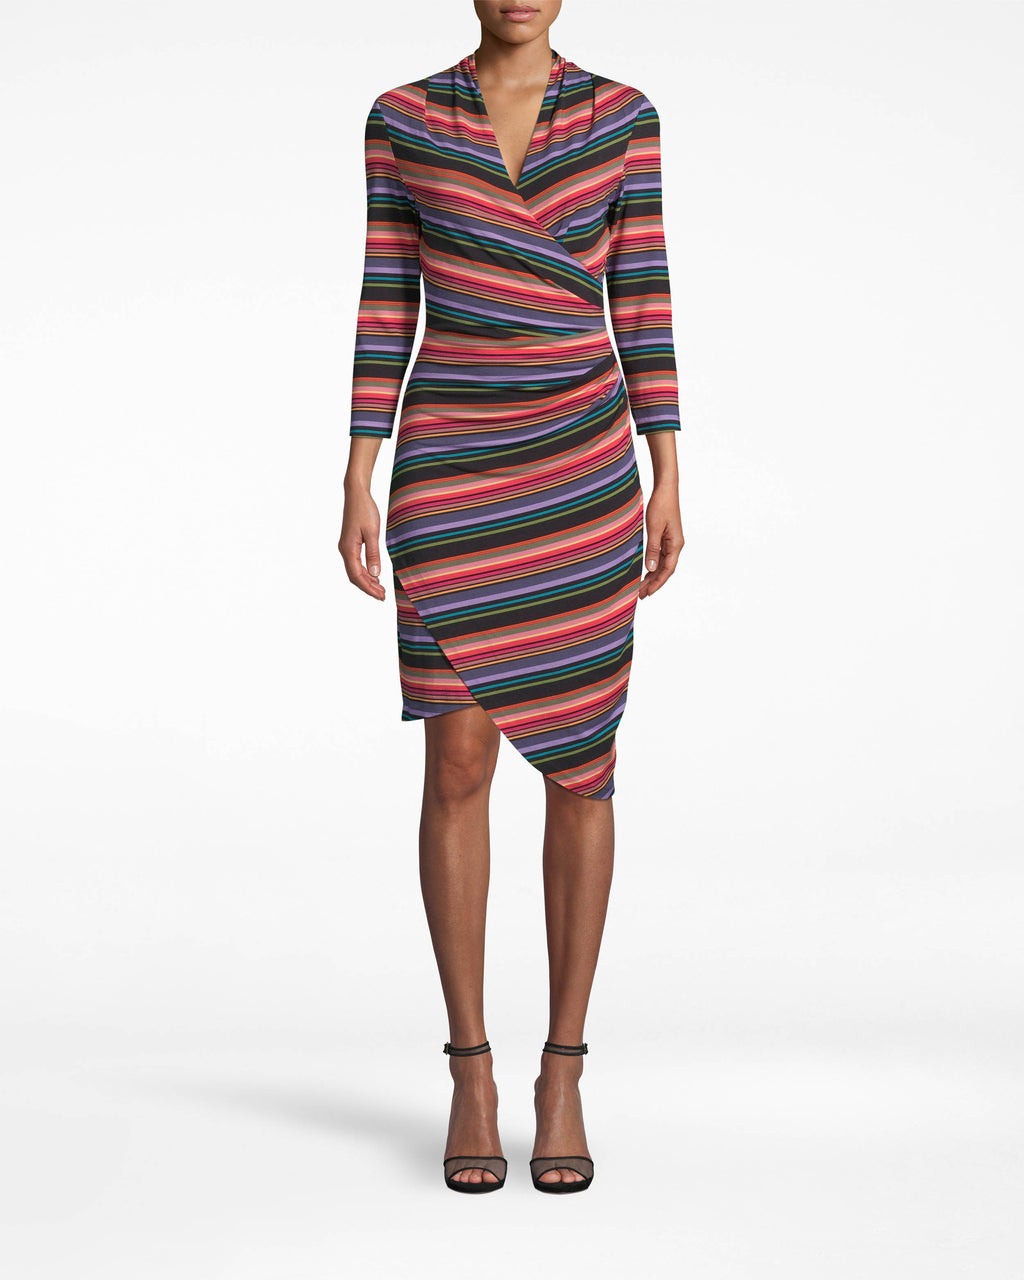 BH20046 - DOWNTOWN STRIPE 3/4 SLEEVE STEFANIE DRESS - dresses - short - Hello, eye-catcher. The figure-flattering Stefanie has 3/4 sleeves, an asymmetrical hem, and an elongating v-neck. Accessorize minimally so the stripes can do their thing.